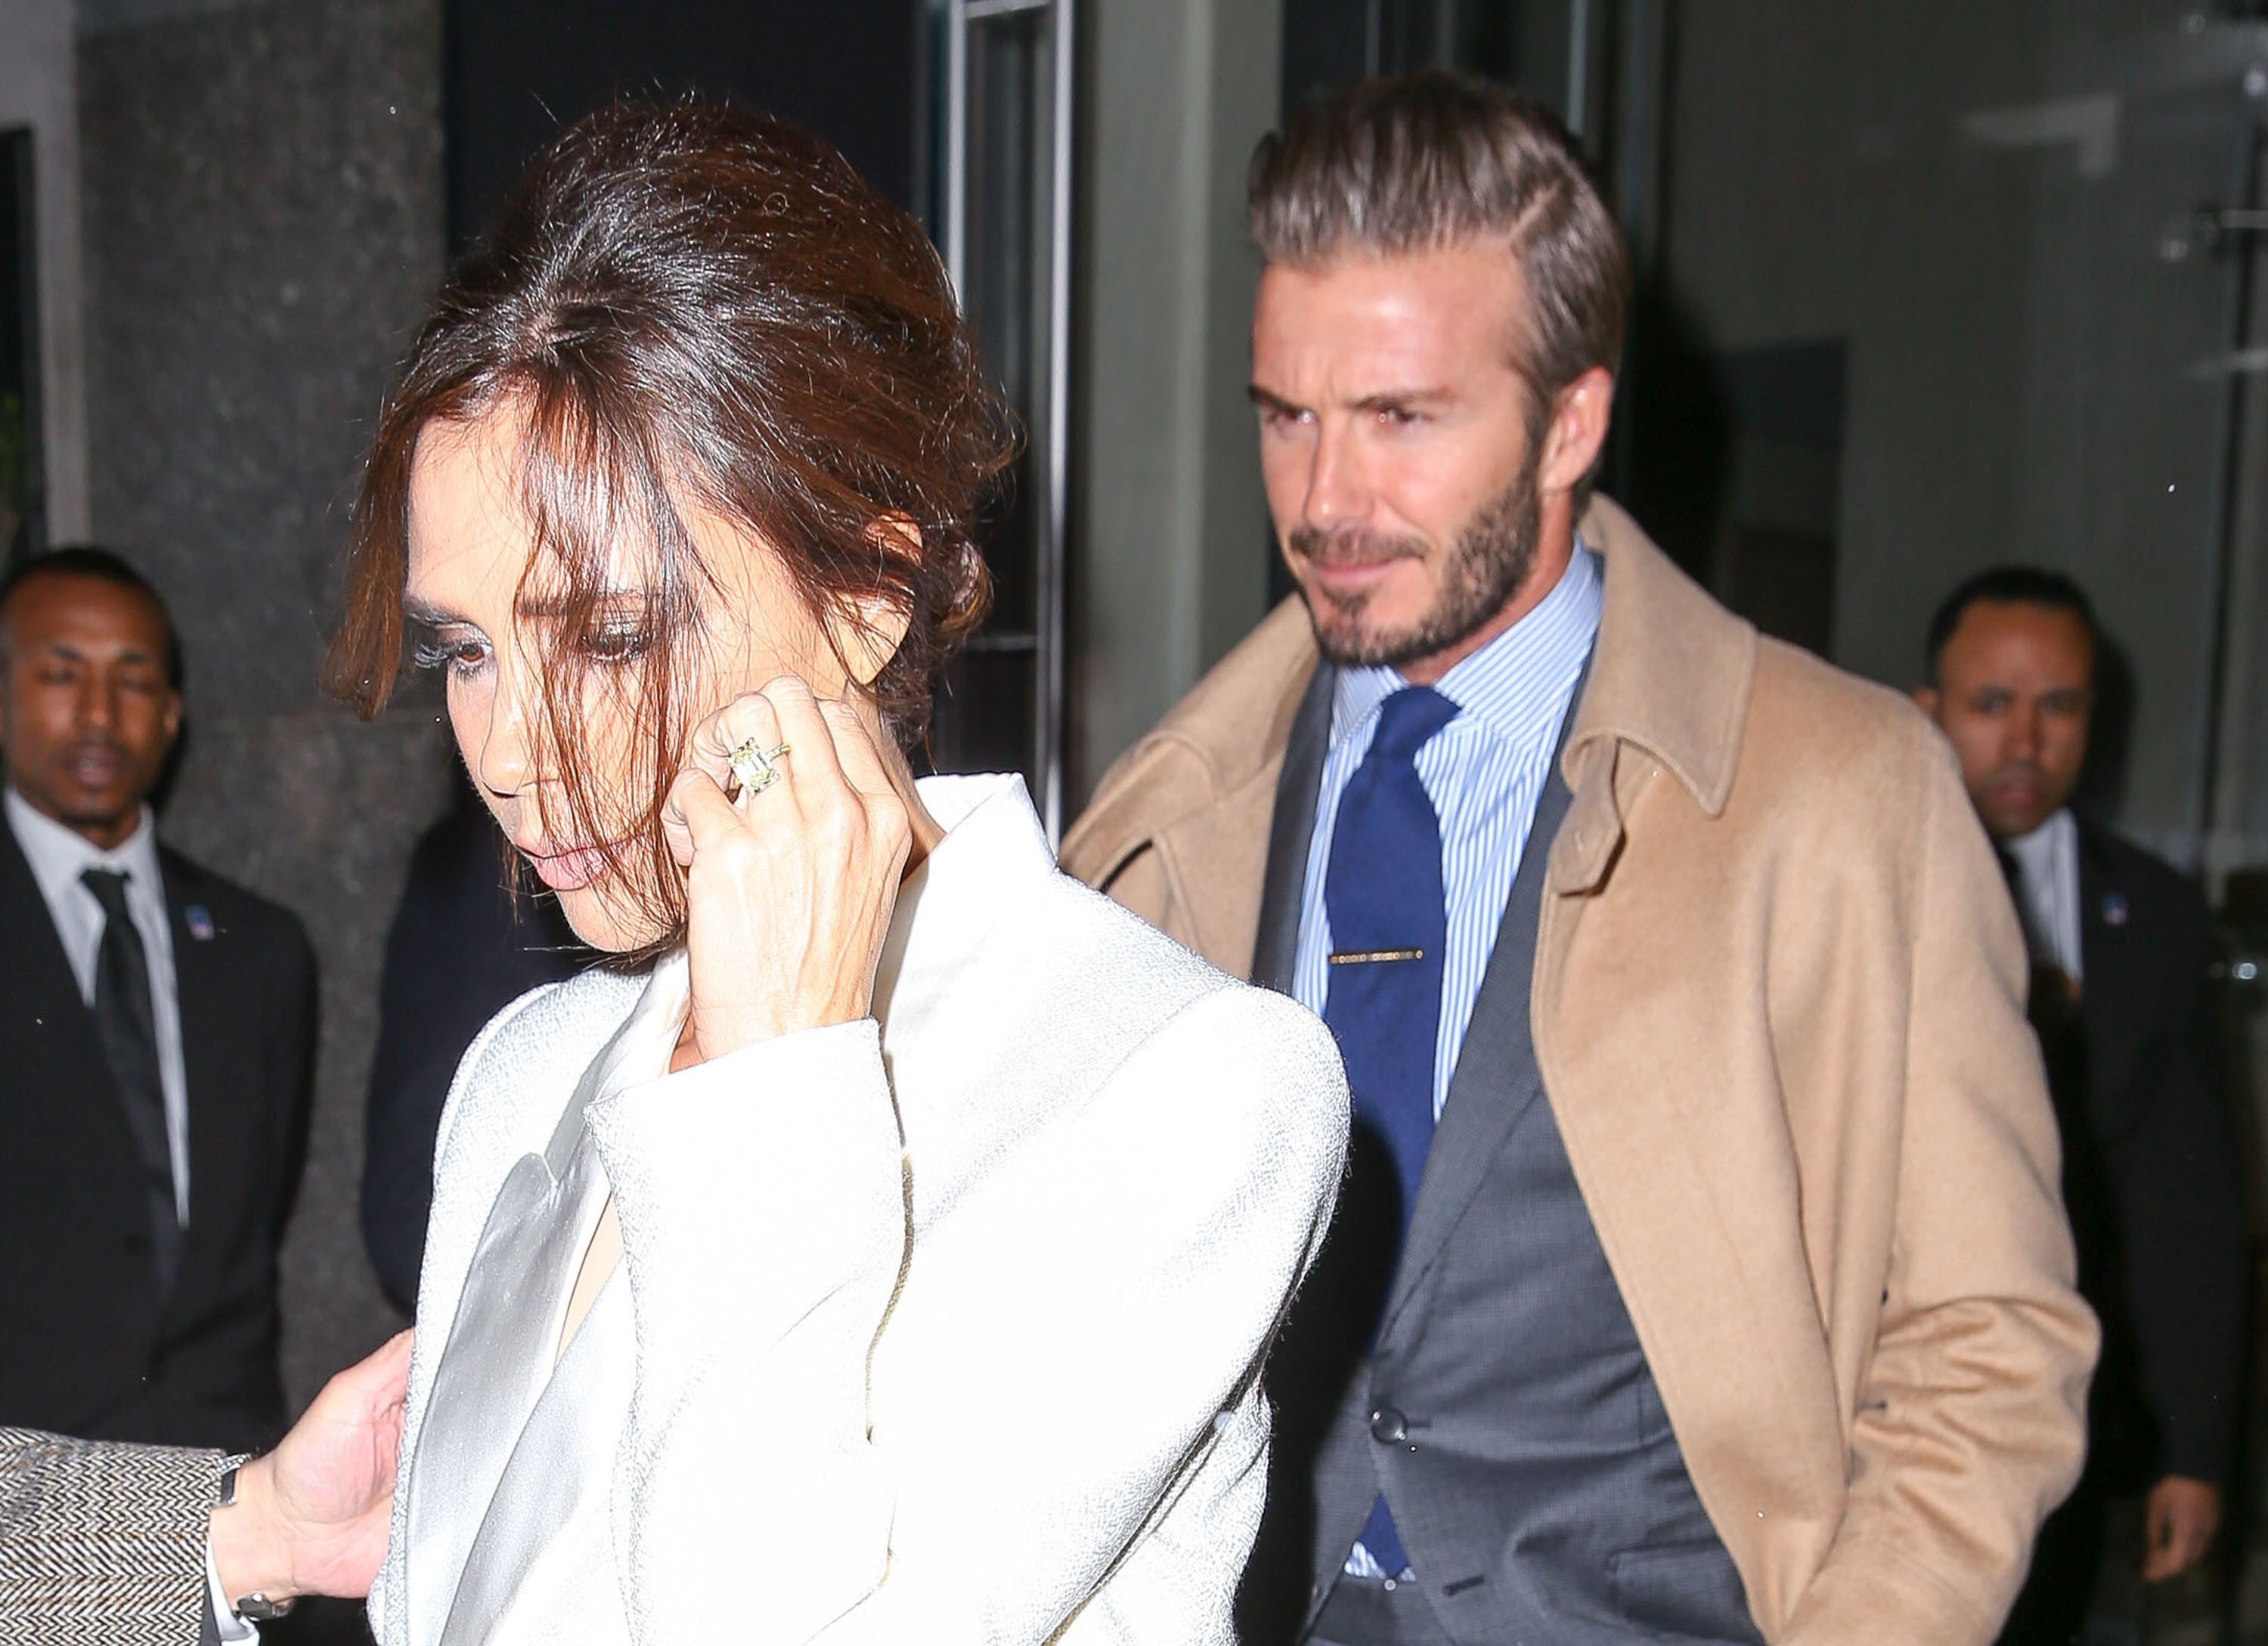 """""""Bored"""" David Beckham's big nights out causing rift with Victoria, reports claim"""